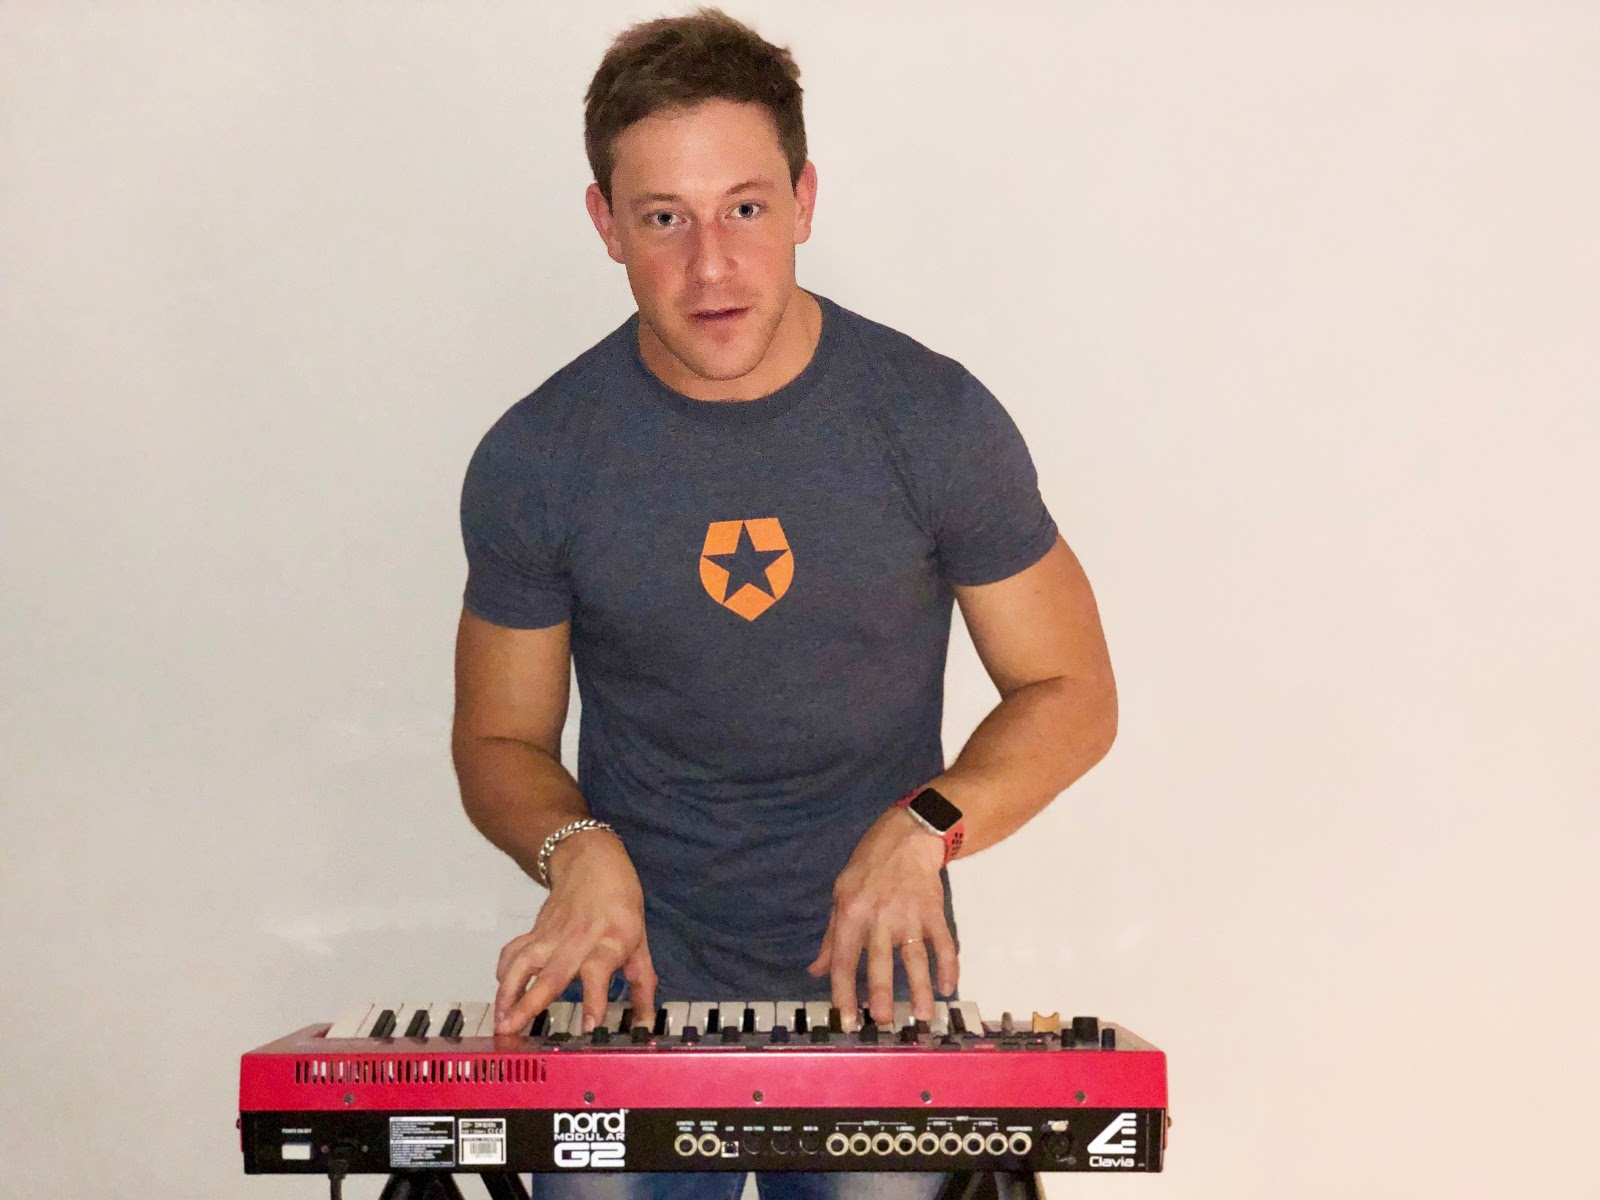 Auth0 Customer Success Architect Julian Lywood-Mulcock playing piano